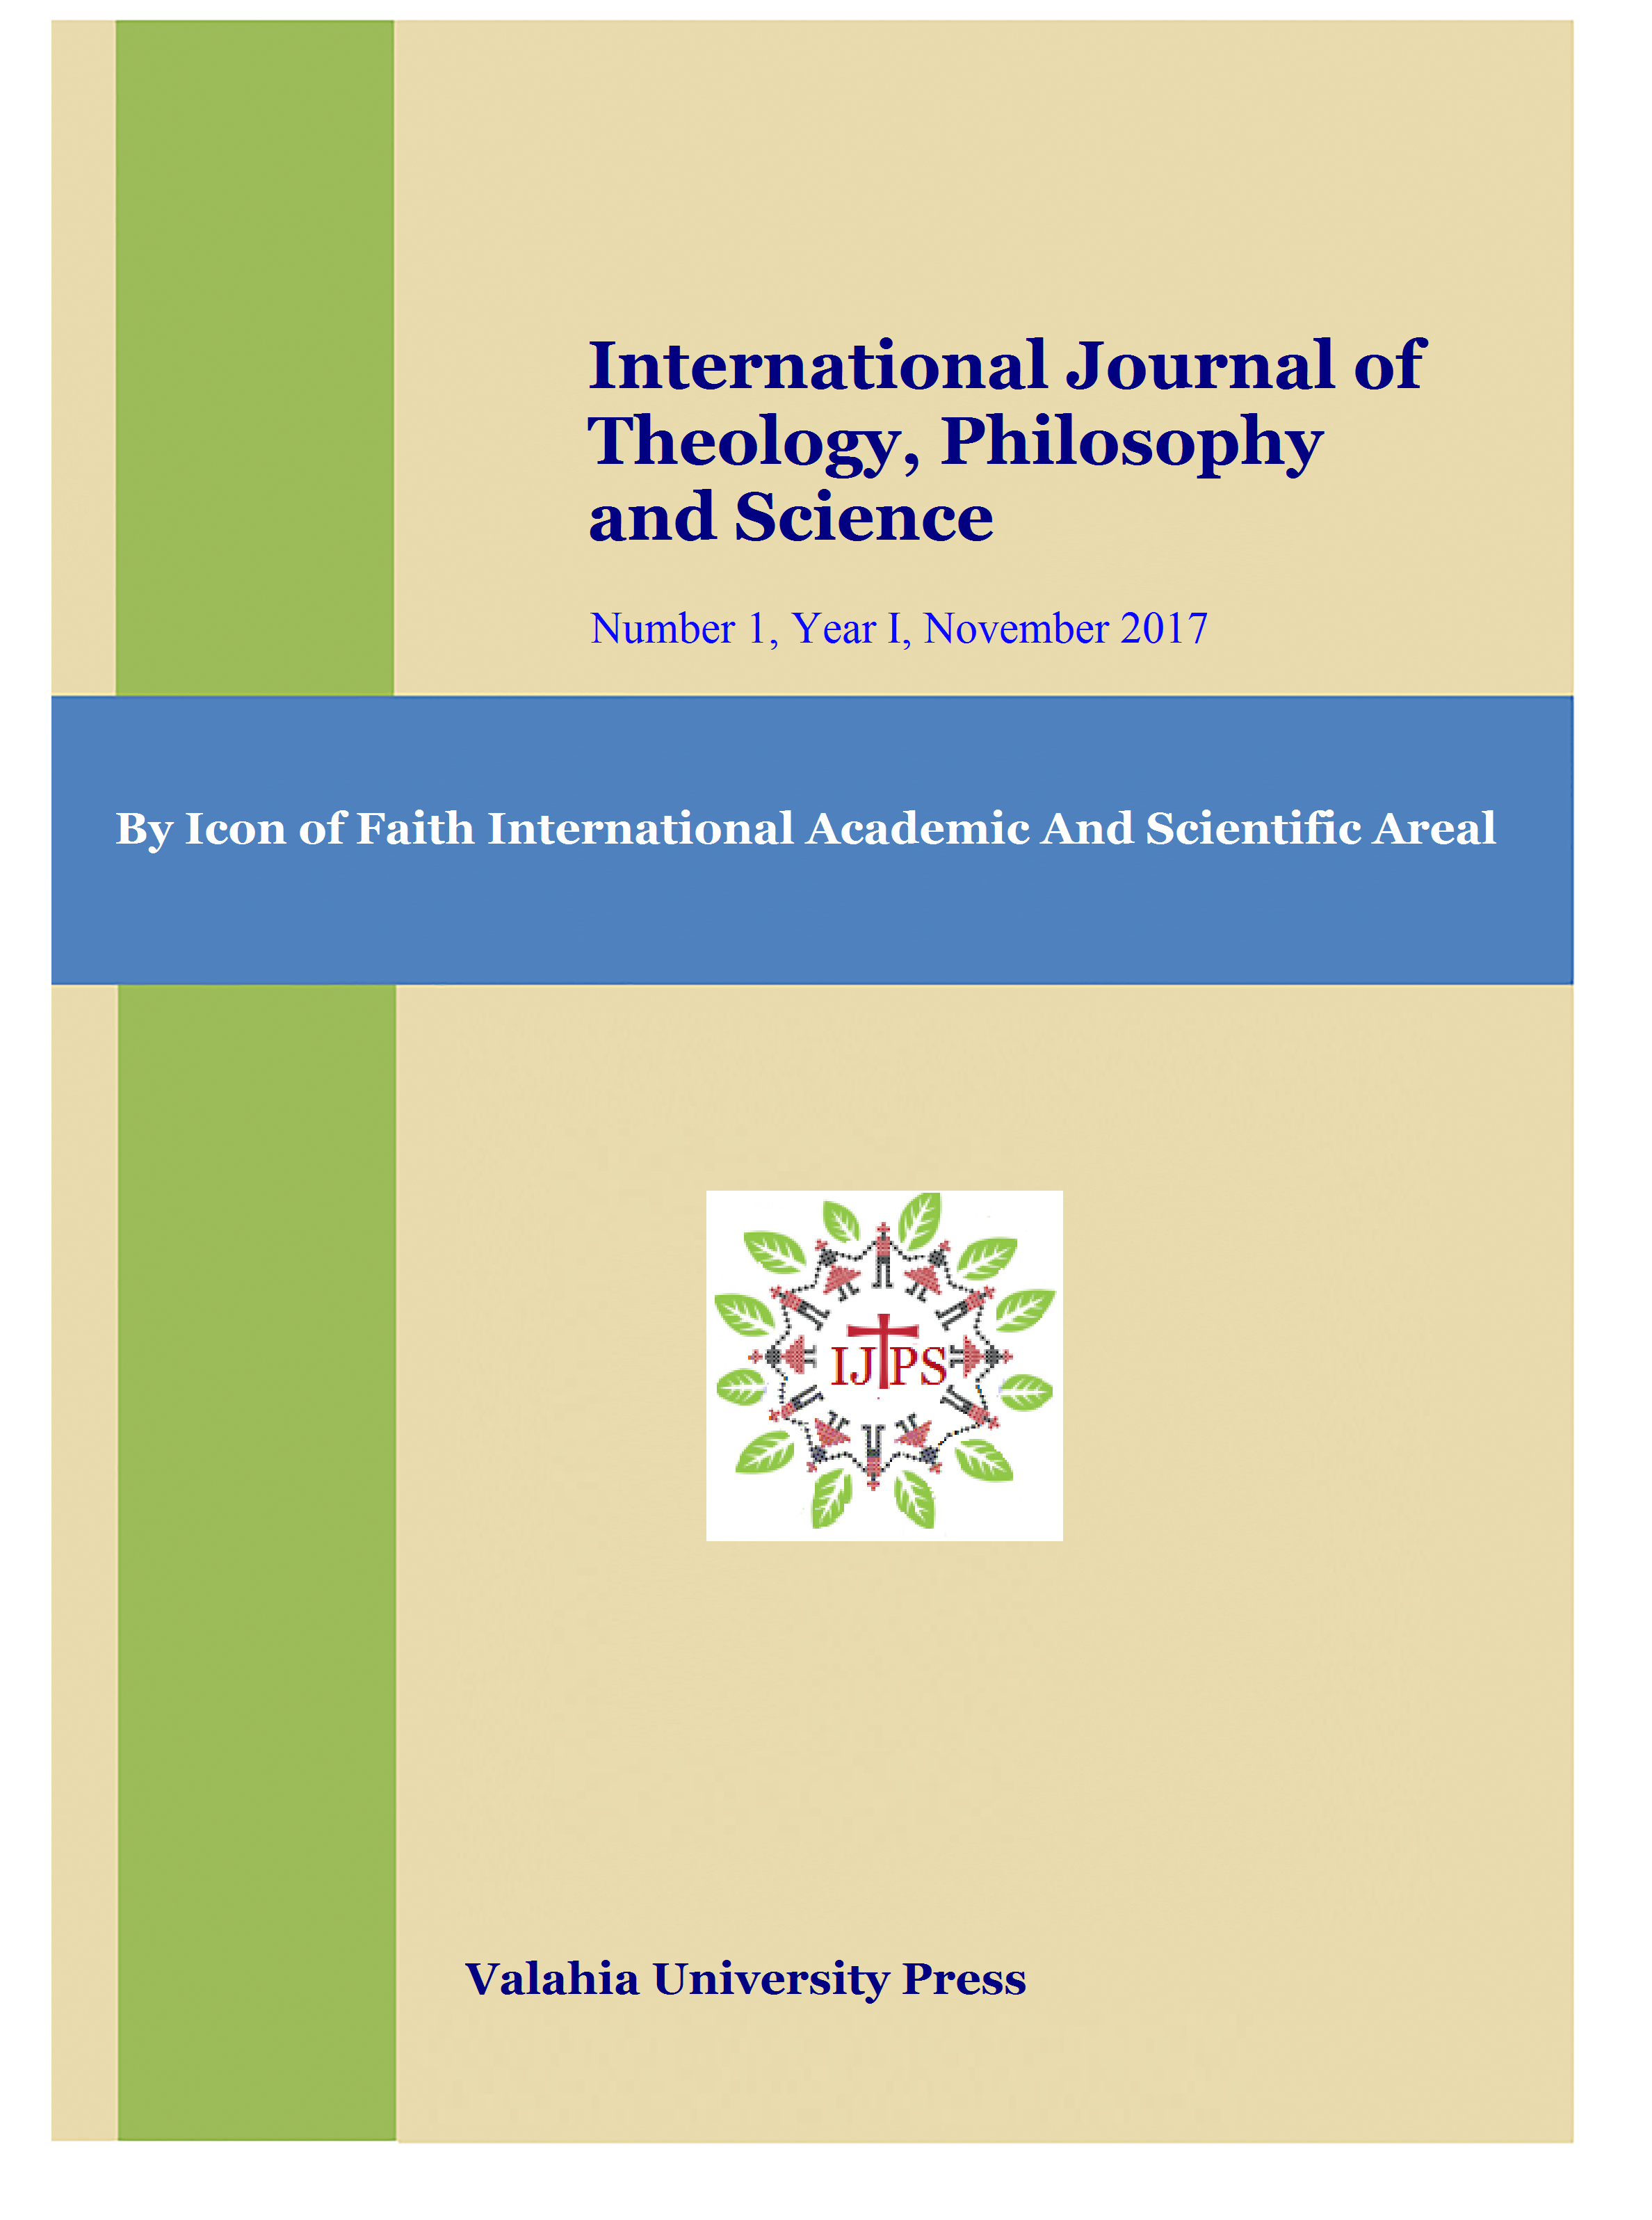 International Journal of Theology, Philosophy and Science